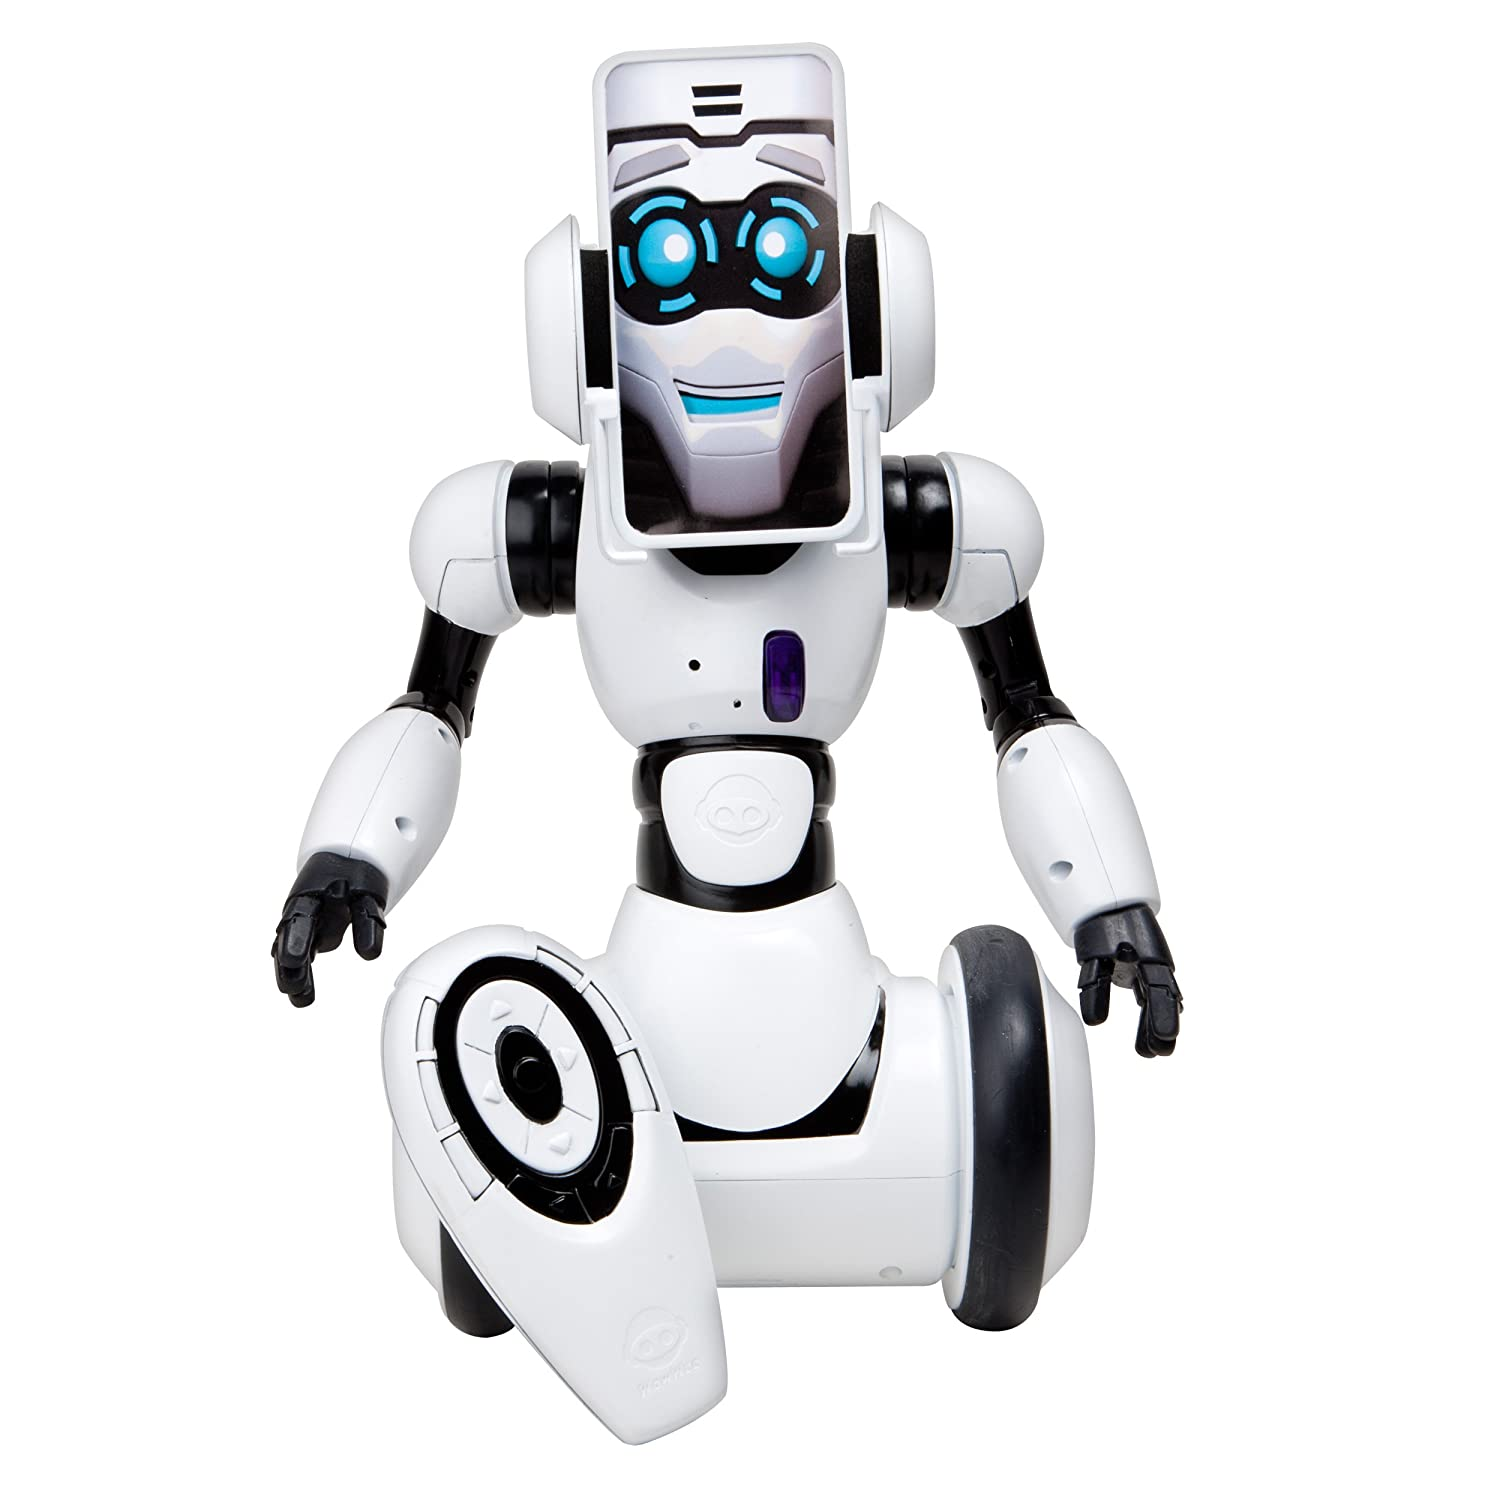 Toys For Robots : The future is now robots you can already buy today bgr